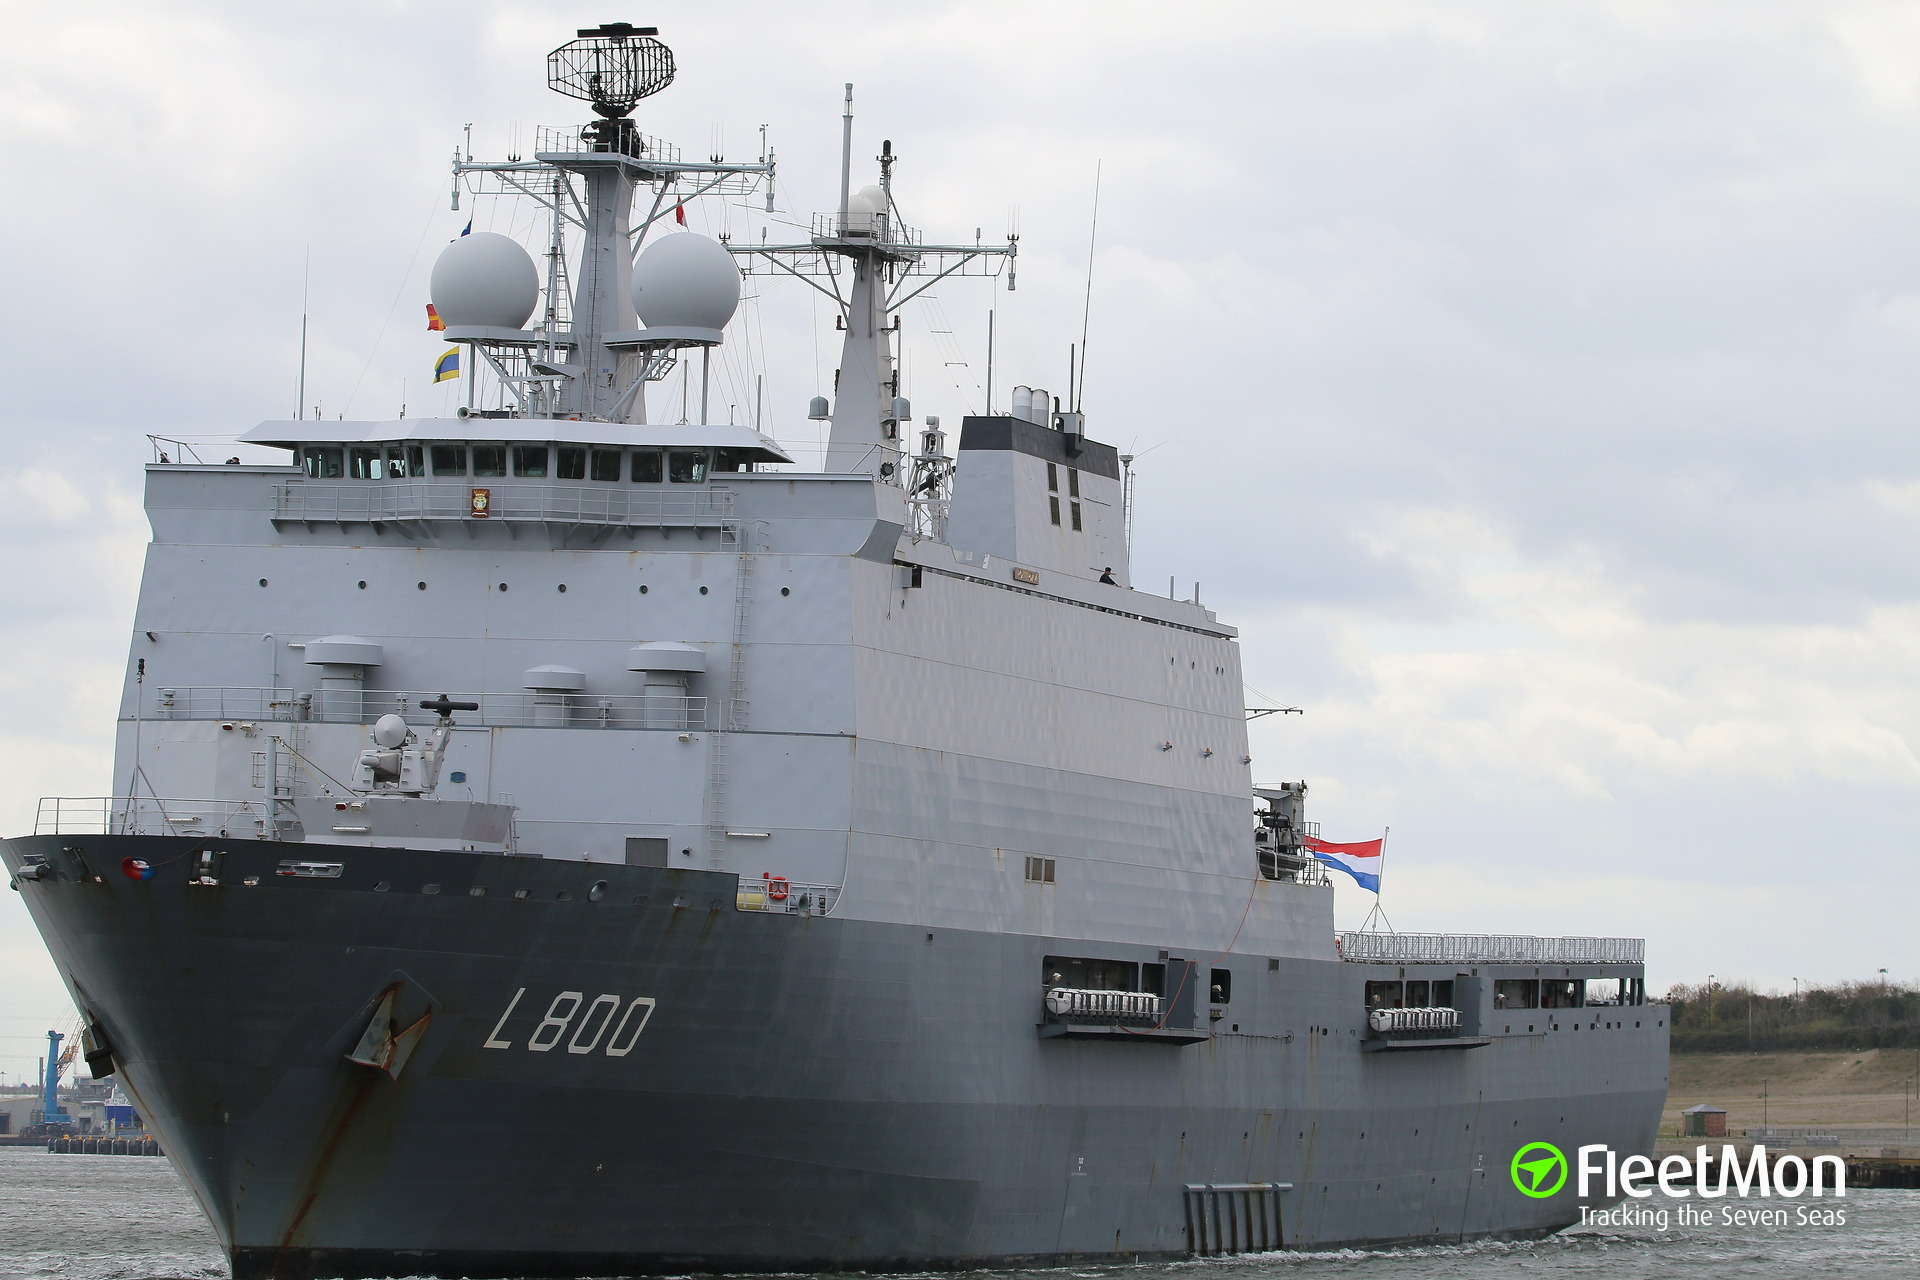 HNMLS Rotterdam destroyed mother ship while fired upon by pirates